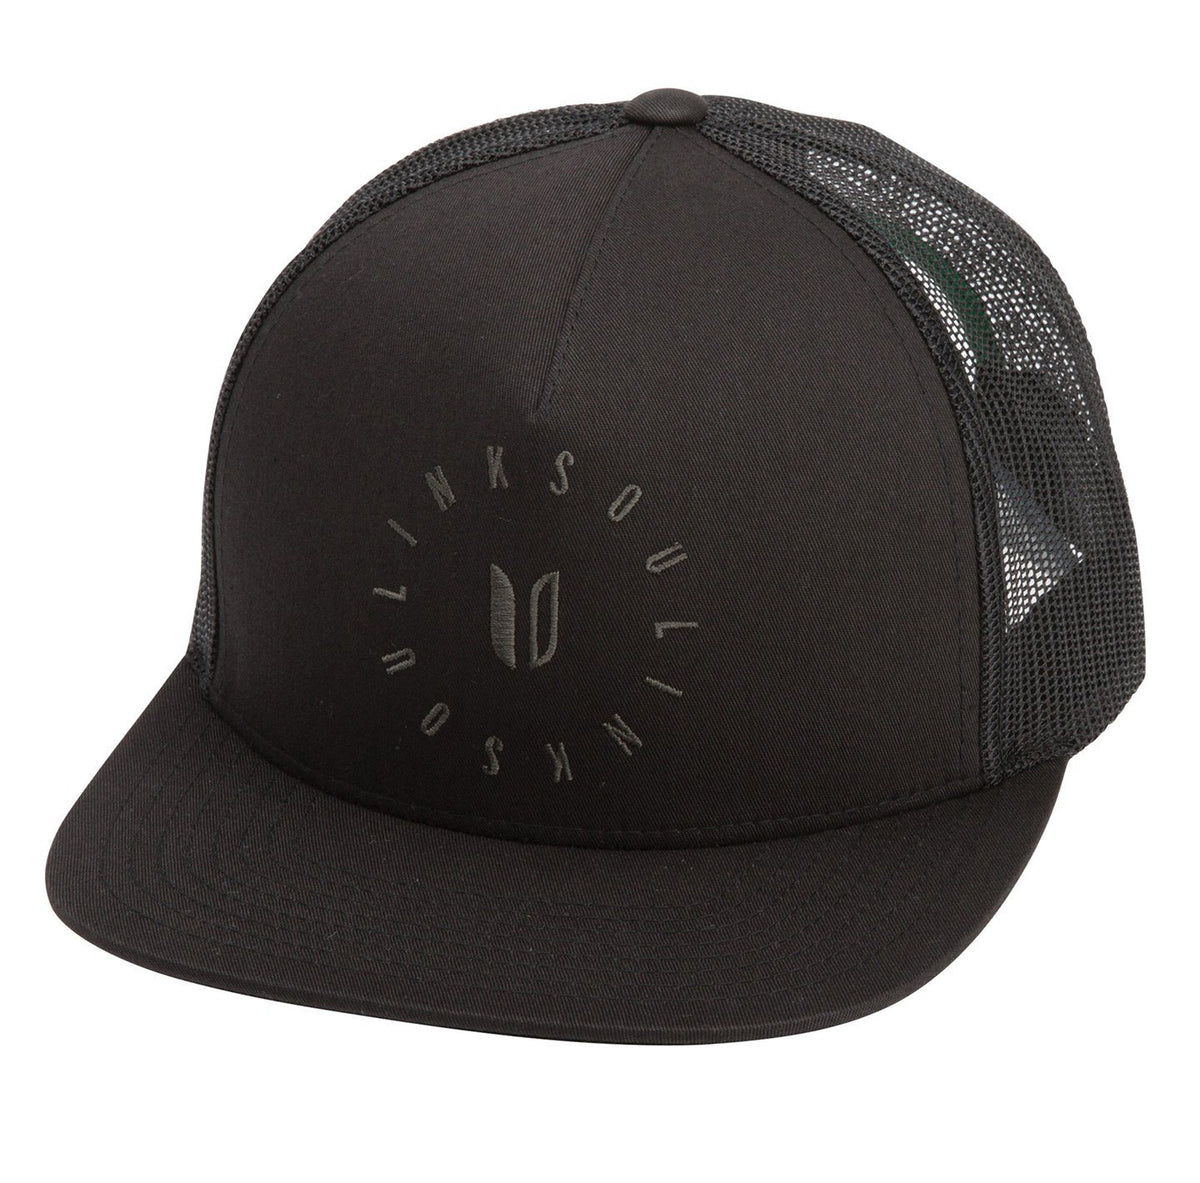 The Standard Trucker Hat